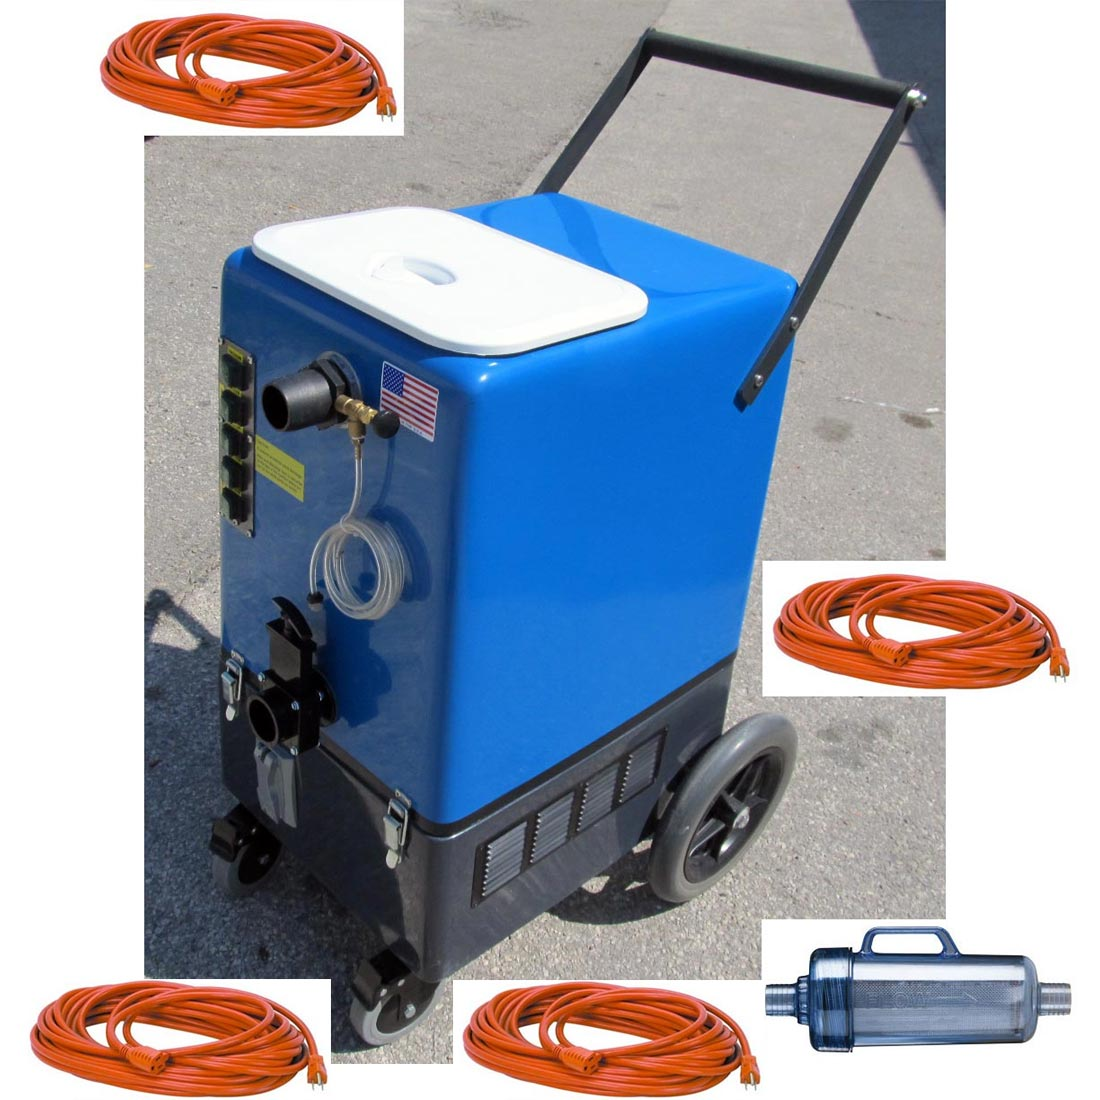 DriStorm SBM-GO-A-6 Goliath 6.6 Flood Pumper 26gal Quad 6.6 Vacs Pressure Washer Recovery 120v with Lint Filtration